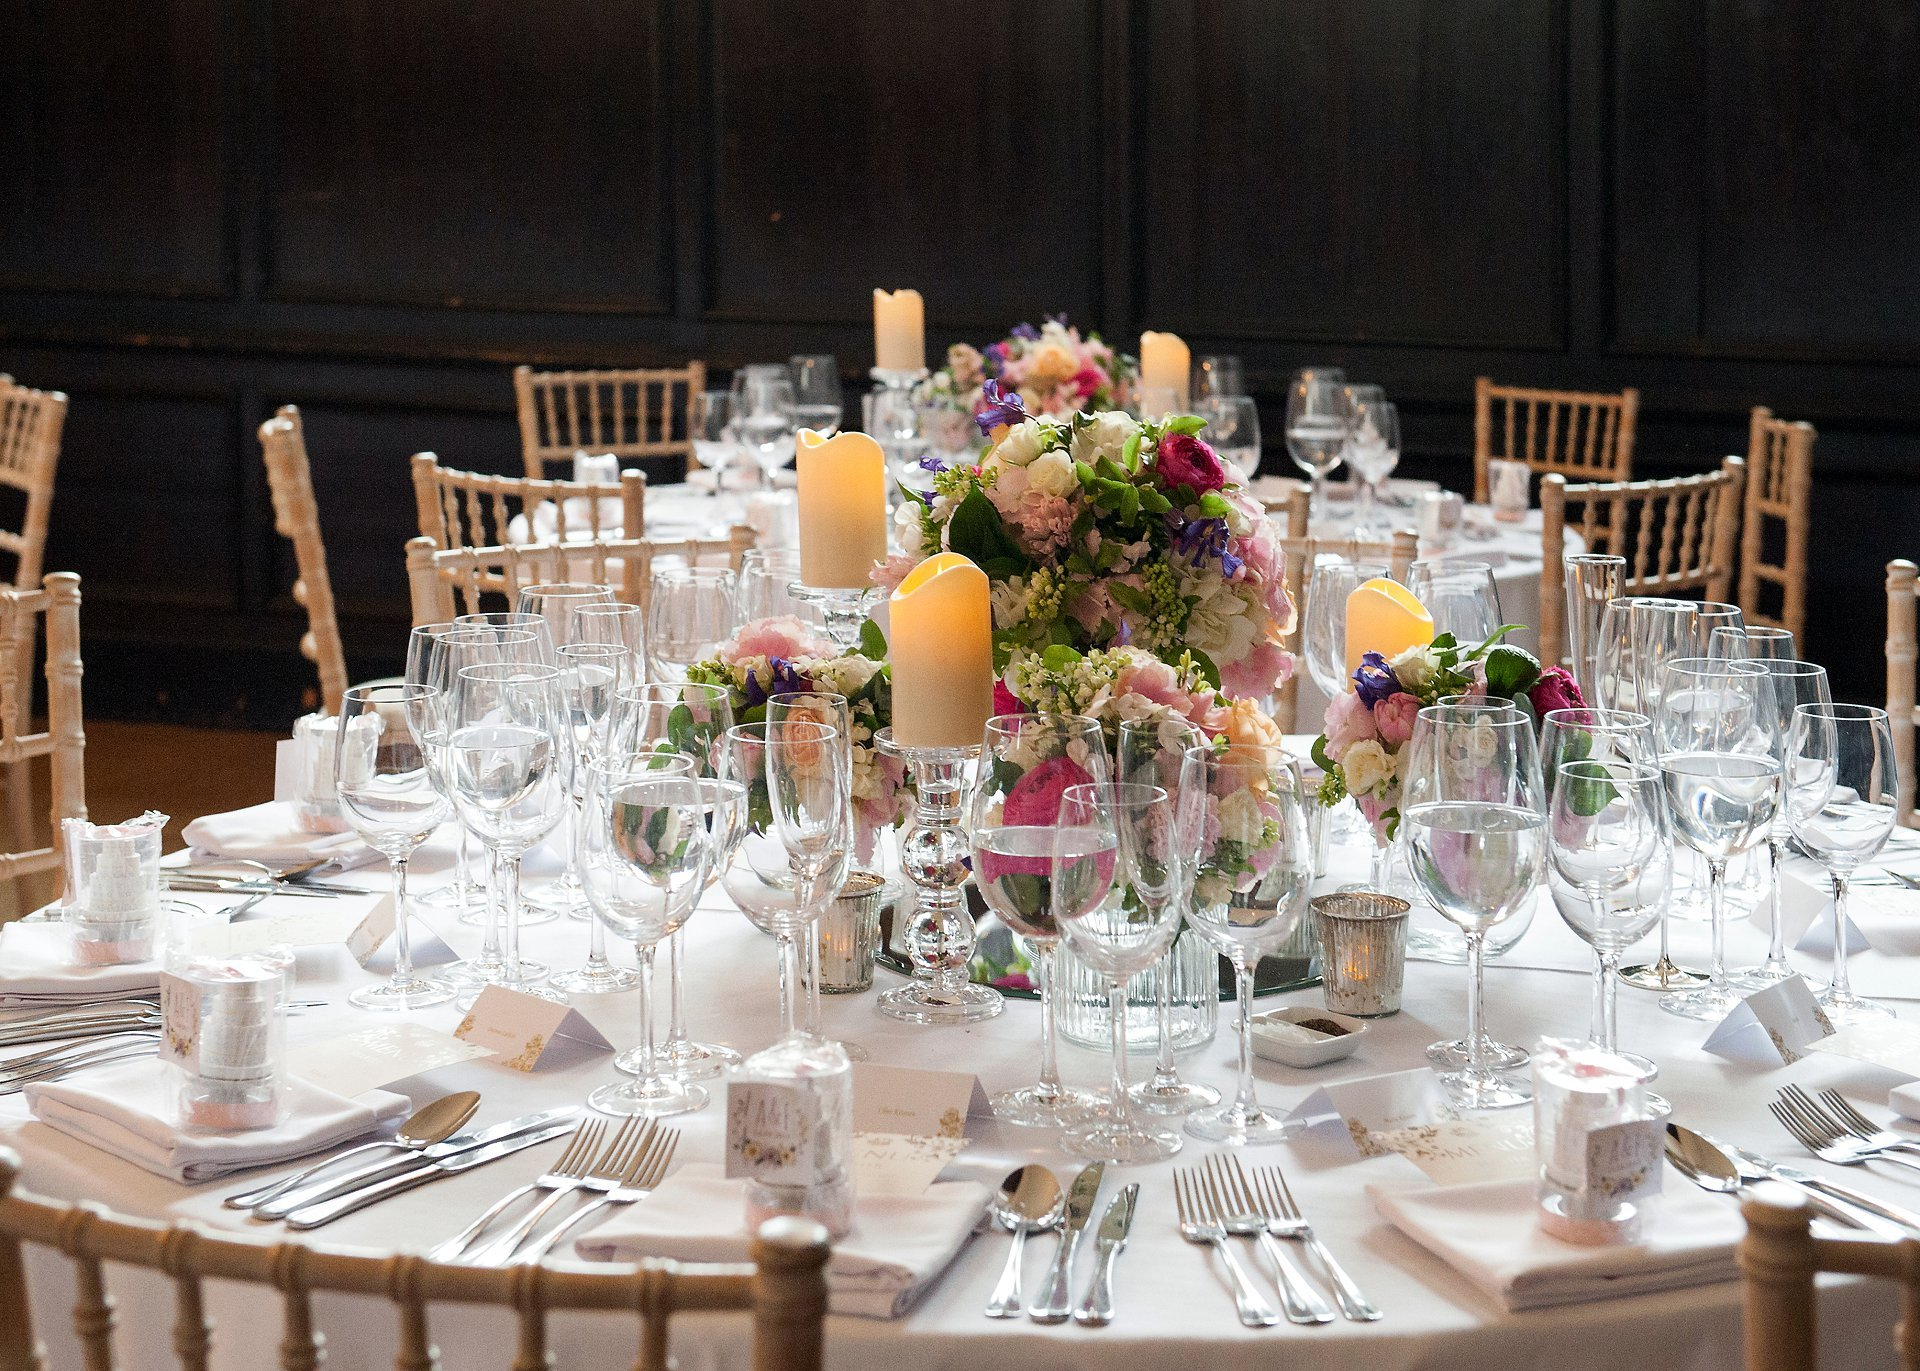 Stunning traditional English table decorations in the Great Hall at Fulham Palace